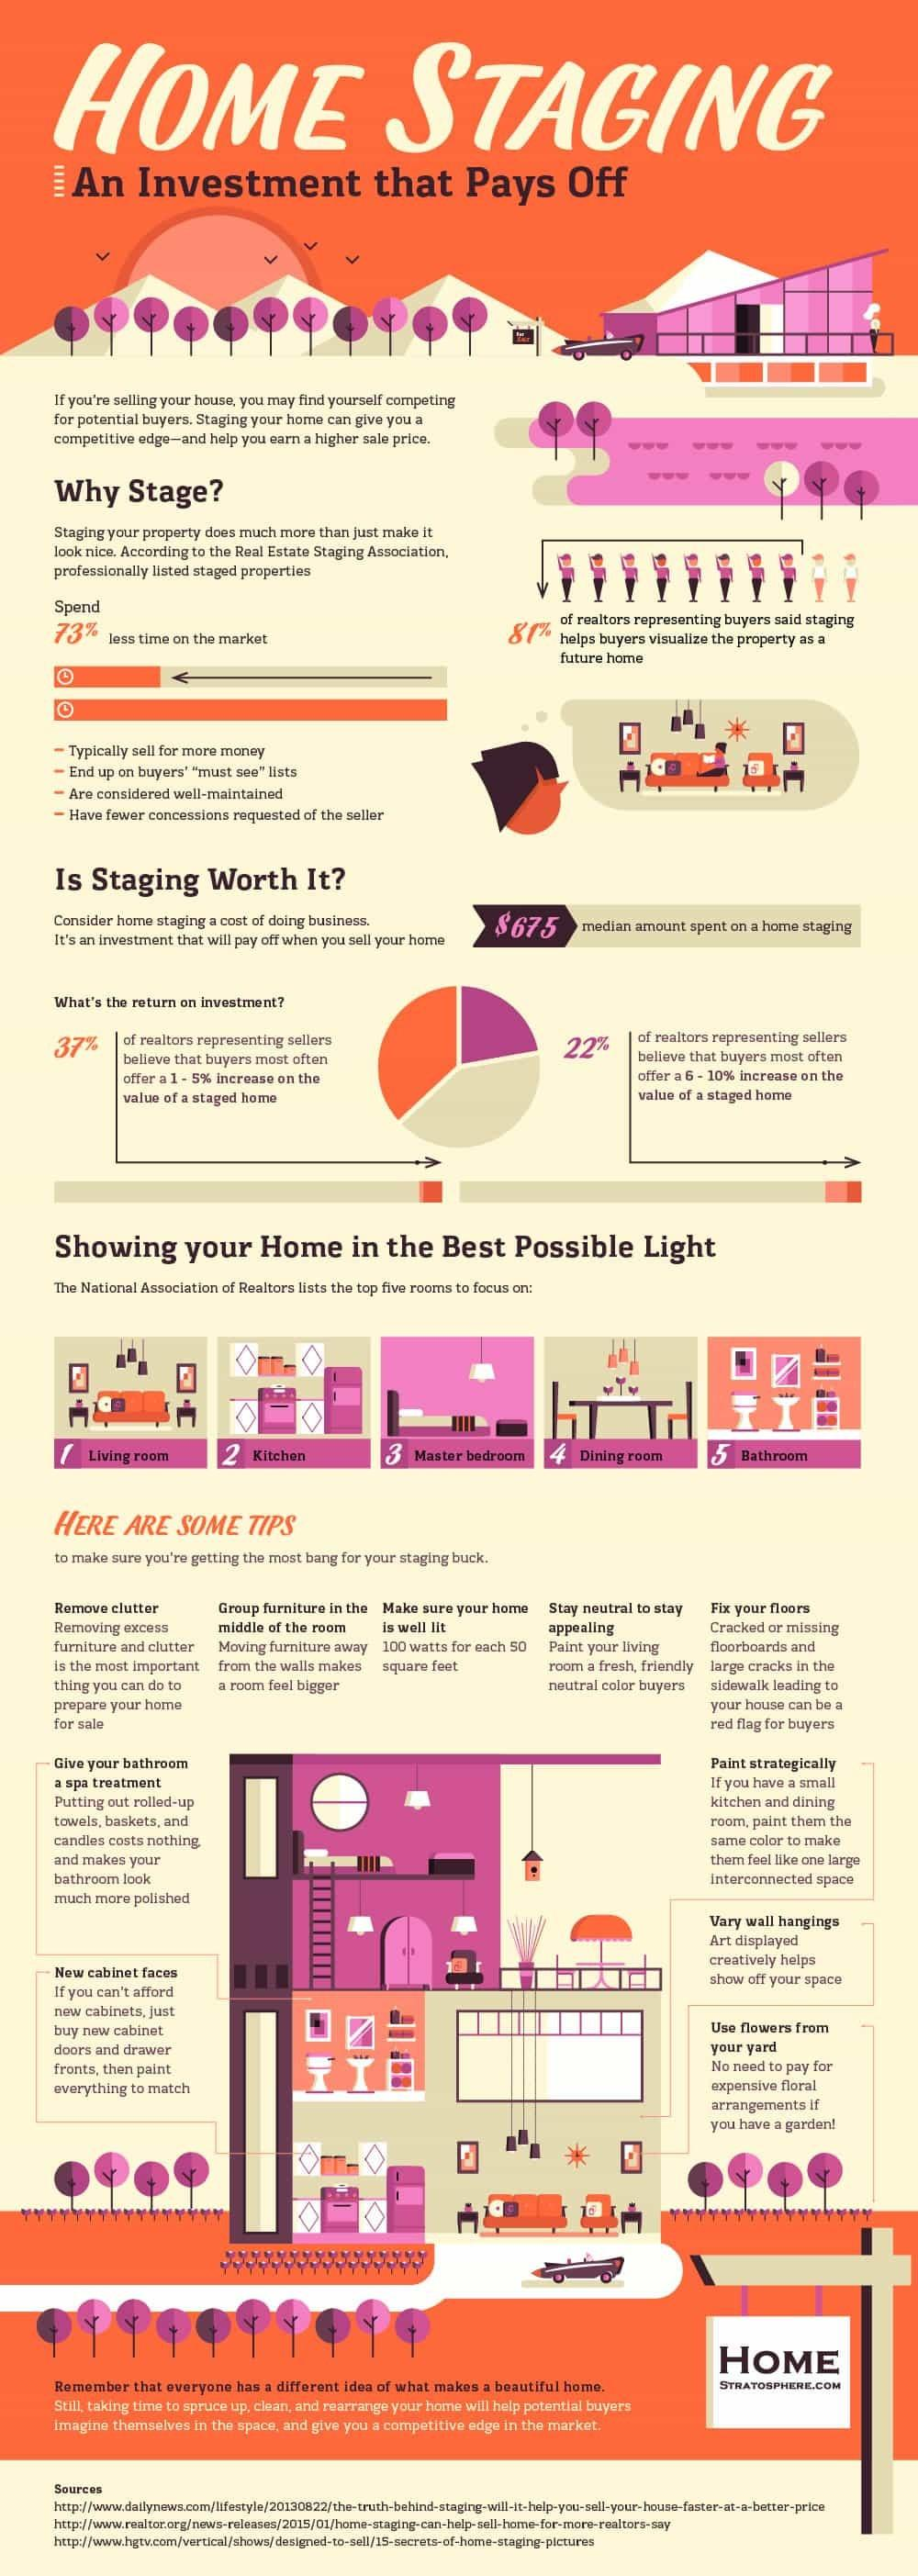 Home Staging Tips Ideas Infographic